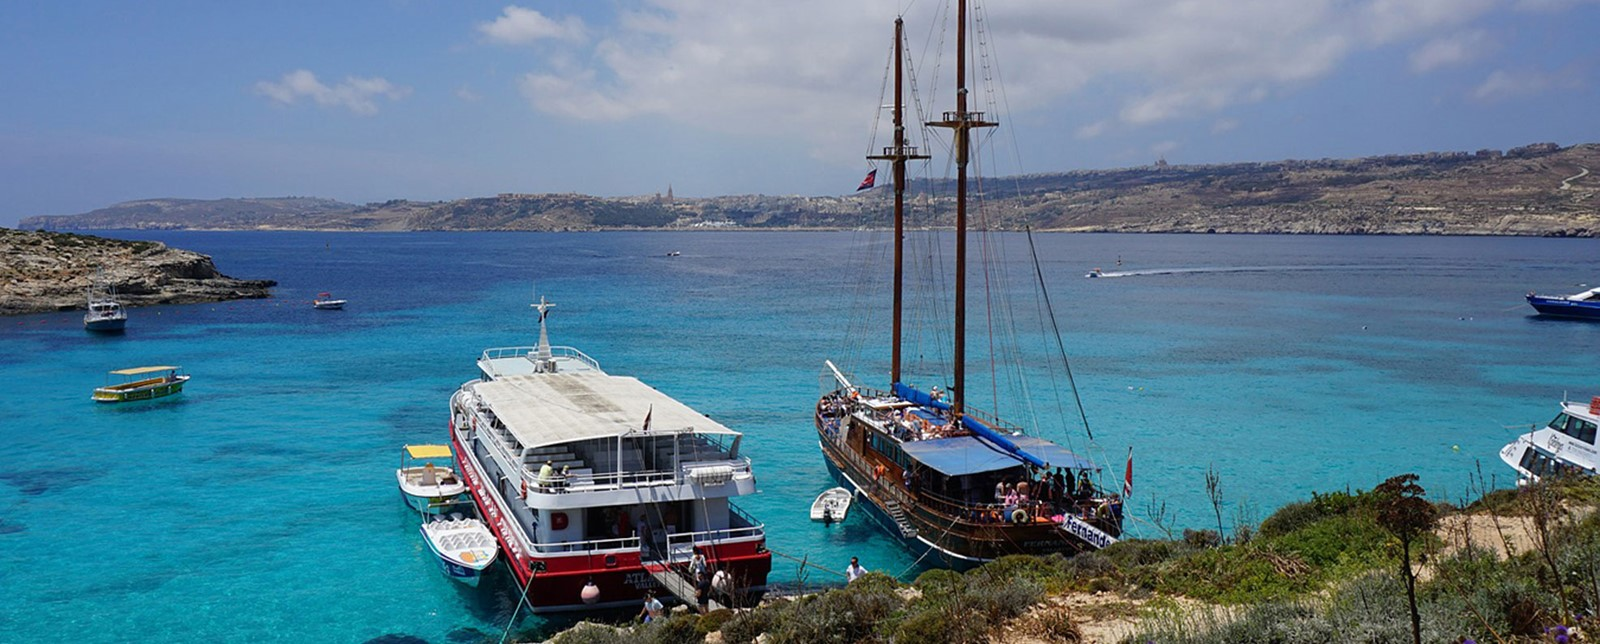 Your Guide To The Blue Lagoon In Malta Corinthia St